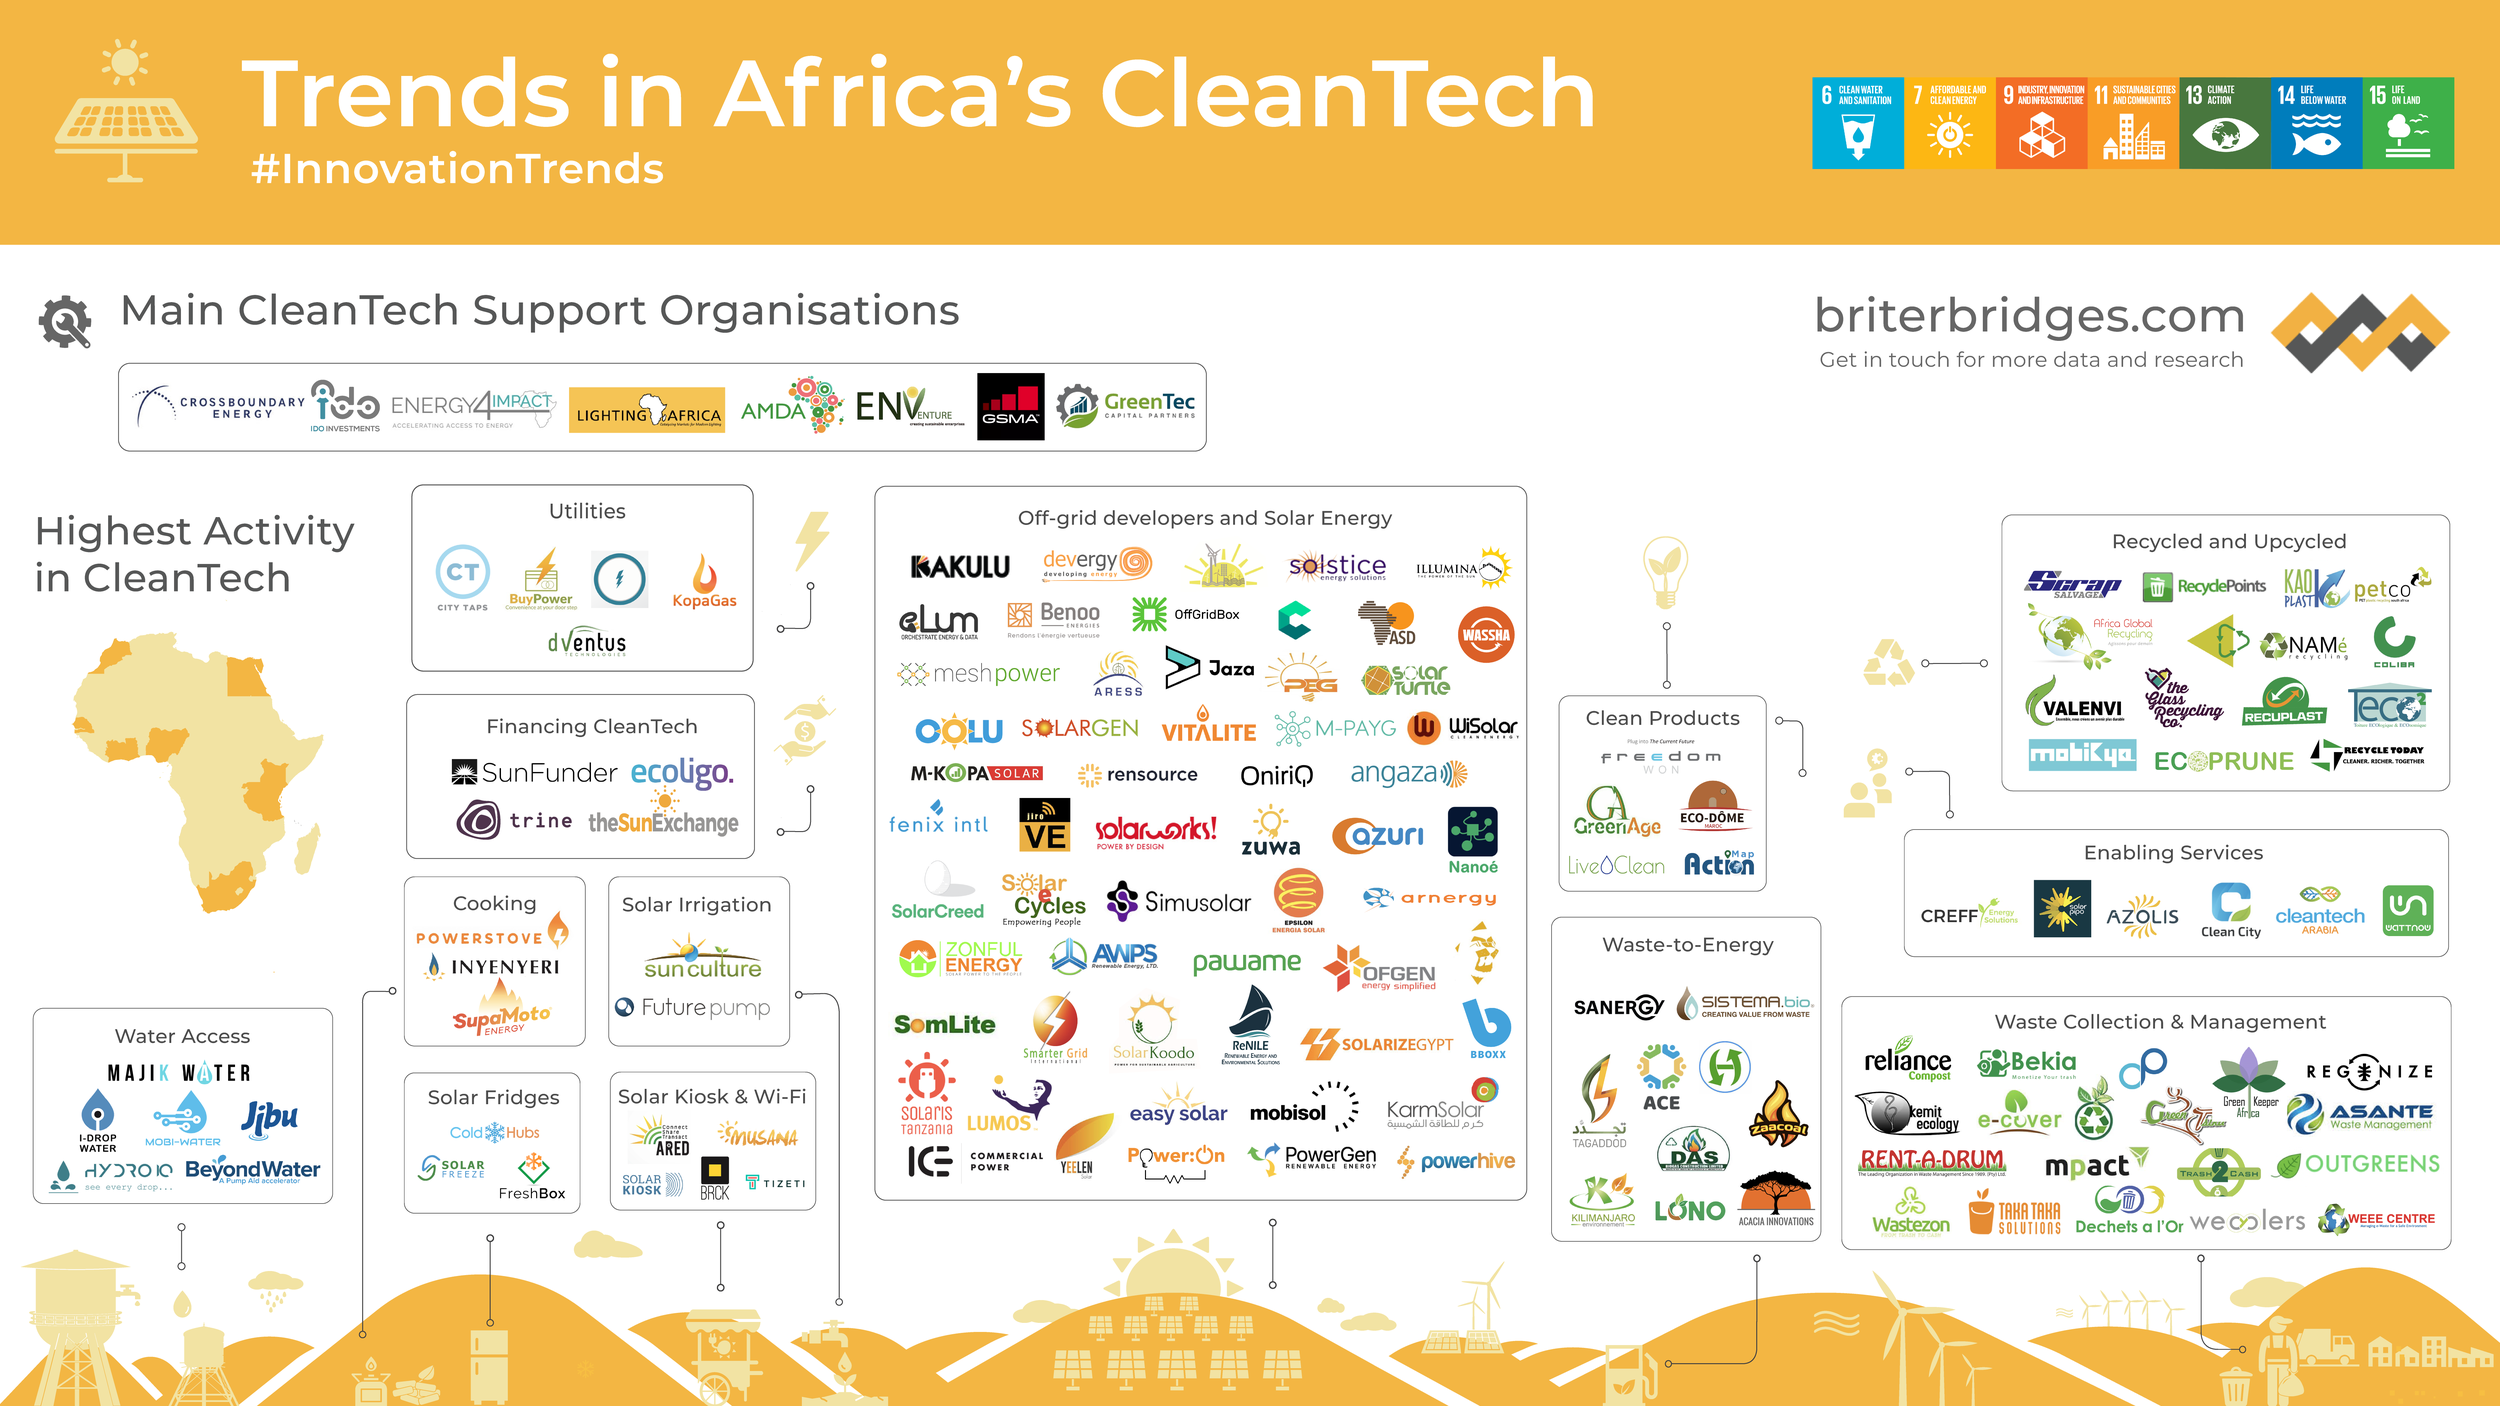 Trends in the CleanTech sector across Africa